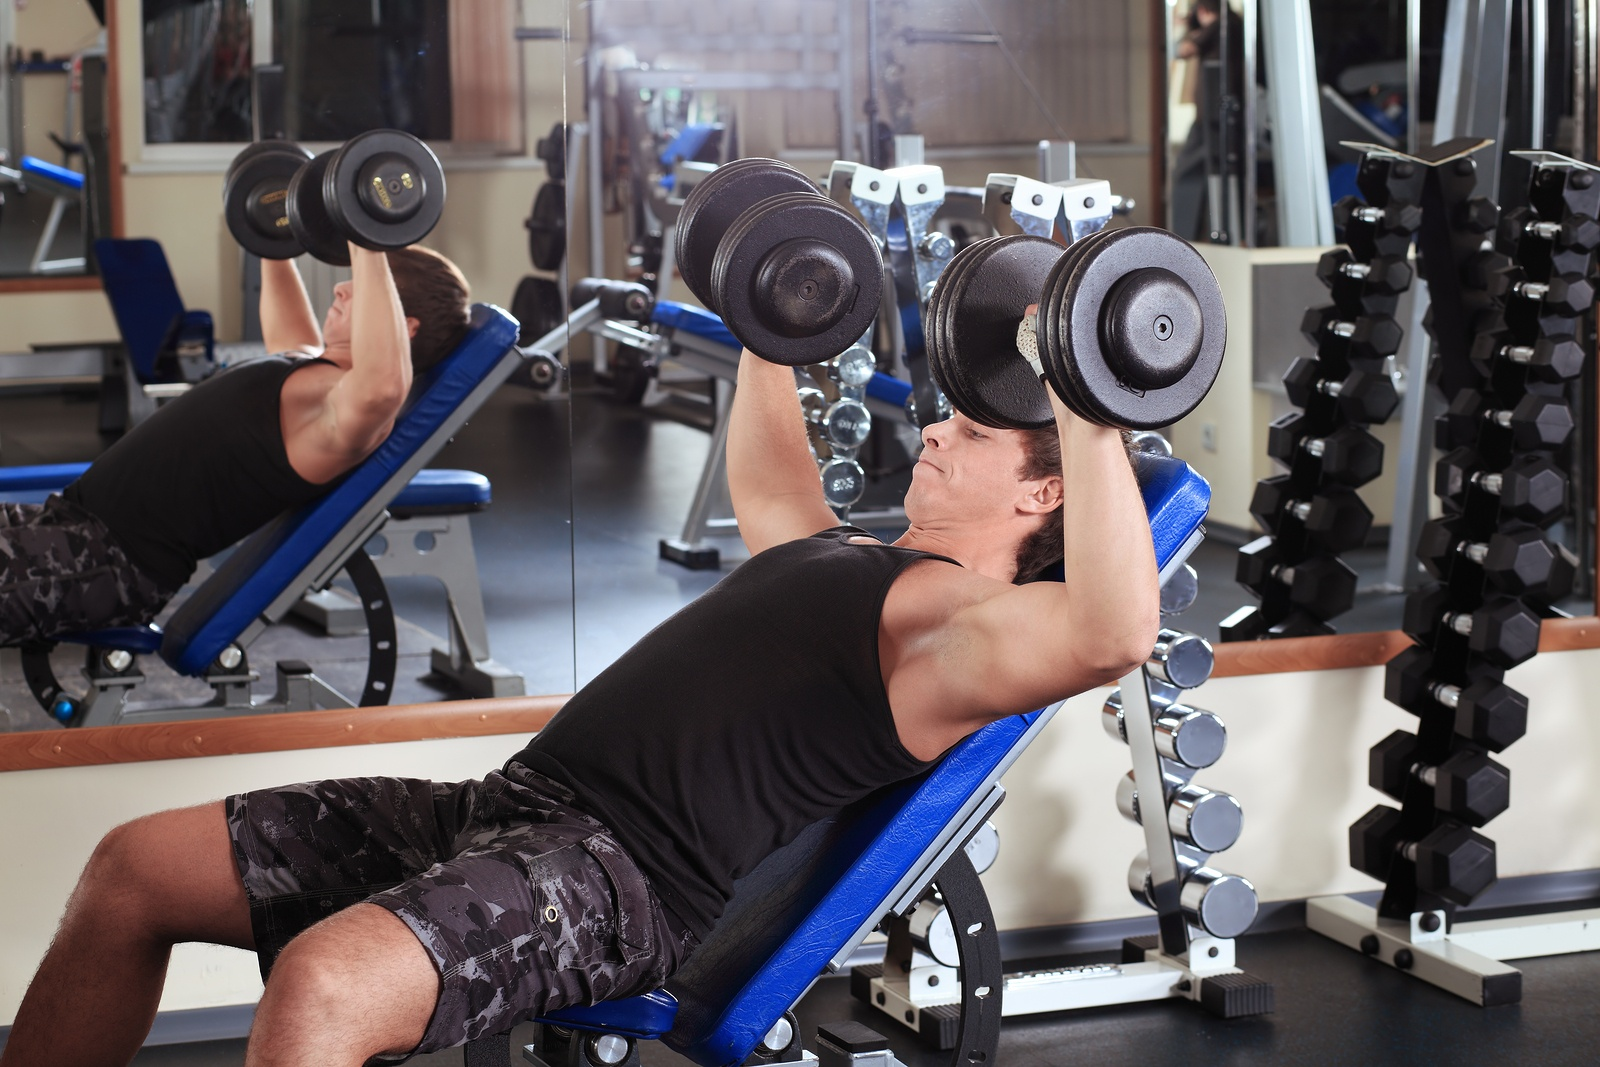 bigstock-Sporty-man-in-the-gym-centre--13155485.jpg